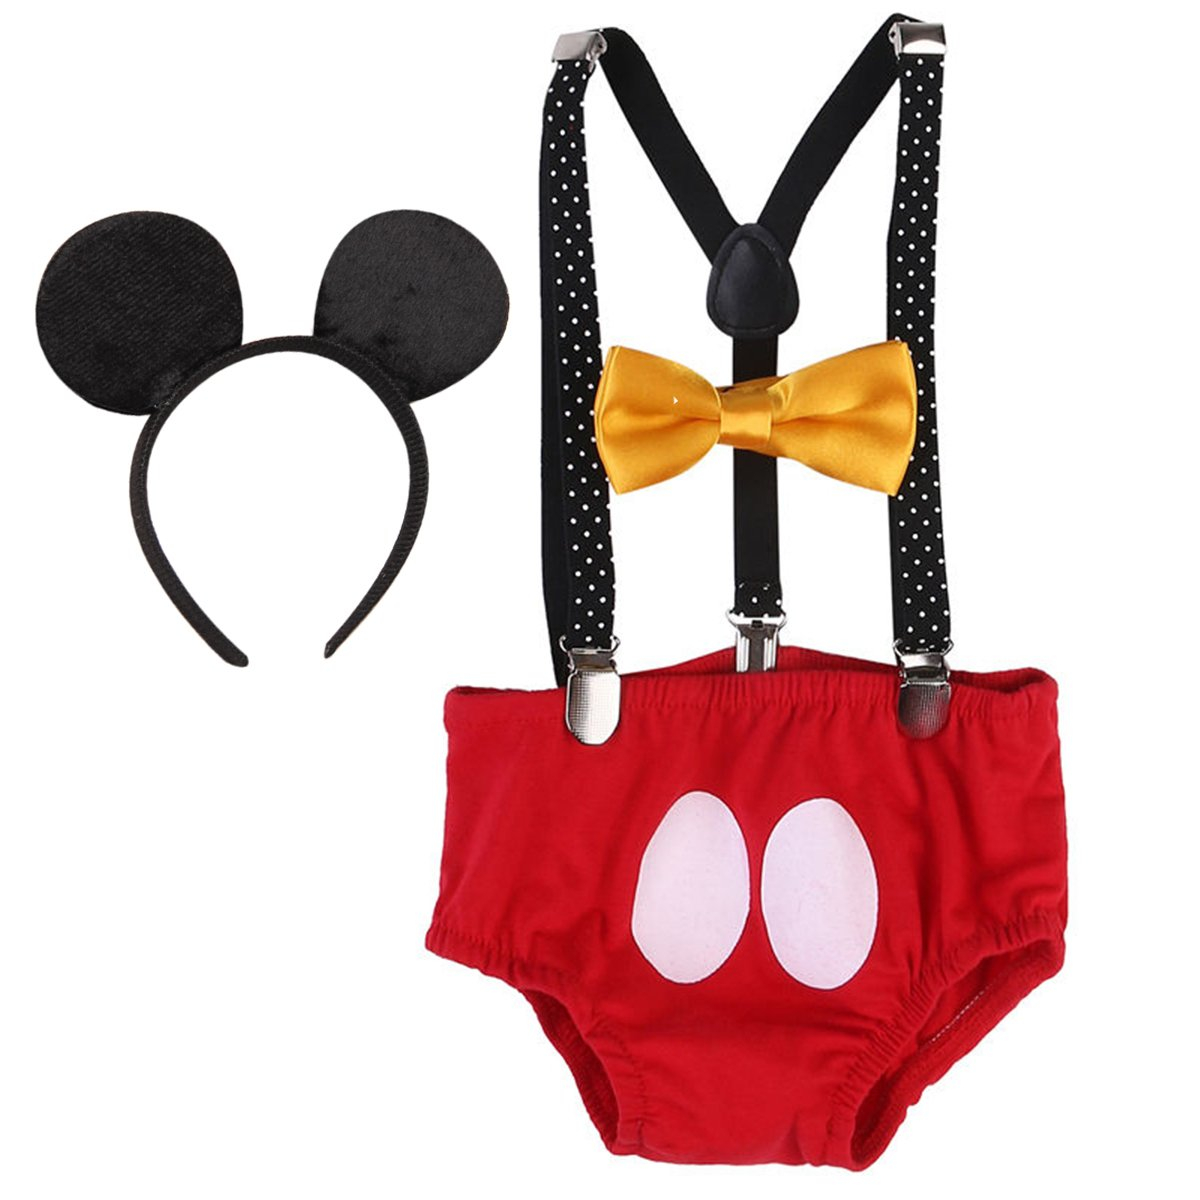 Baby Boys 1st Birthday Cake Smash Outfit Adjustable Y Back Clip Suspenders Bowtie set Bloomers Clothes with Mouse Ears Headband